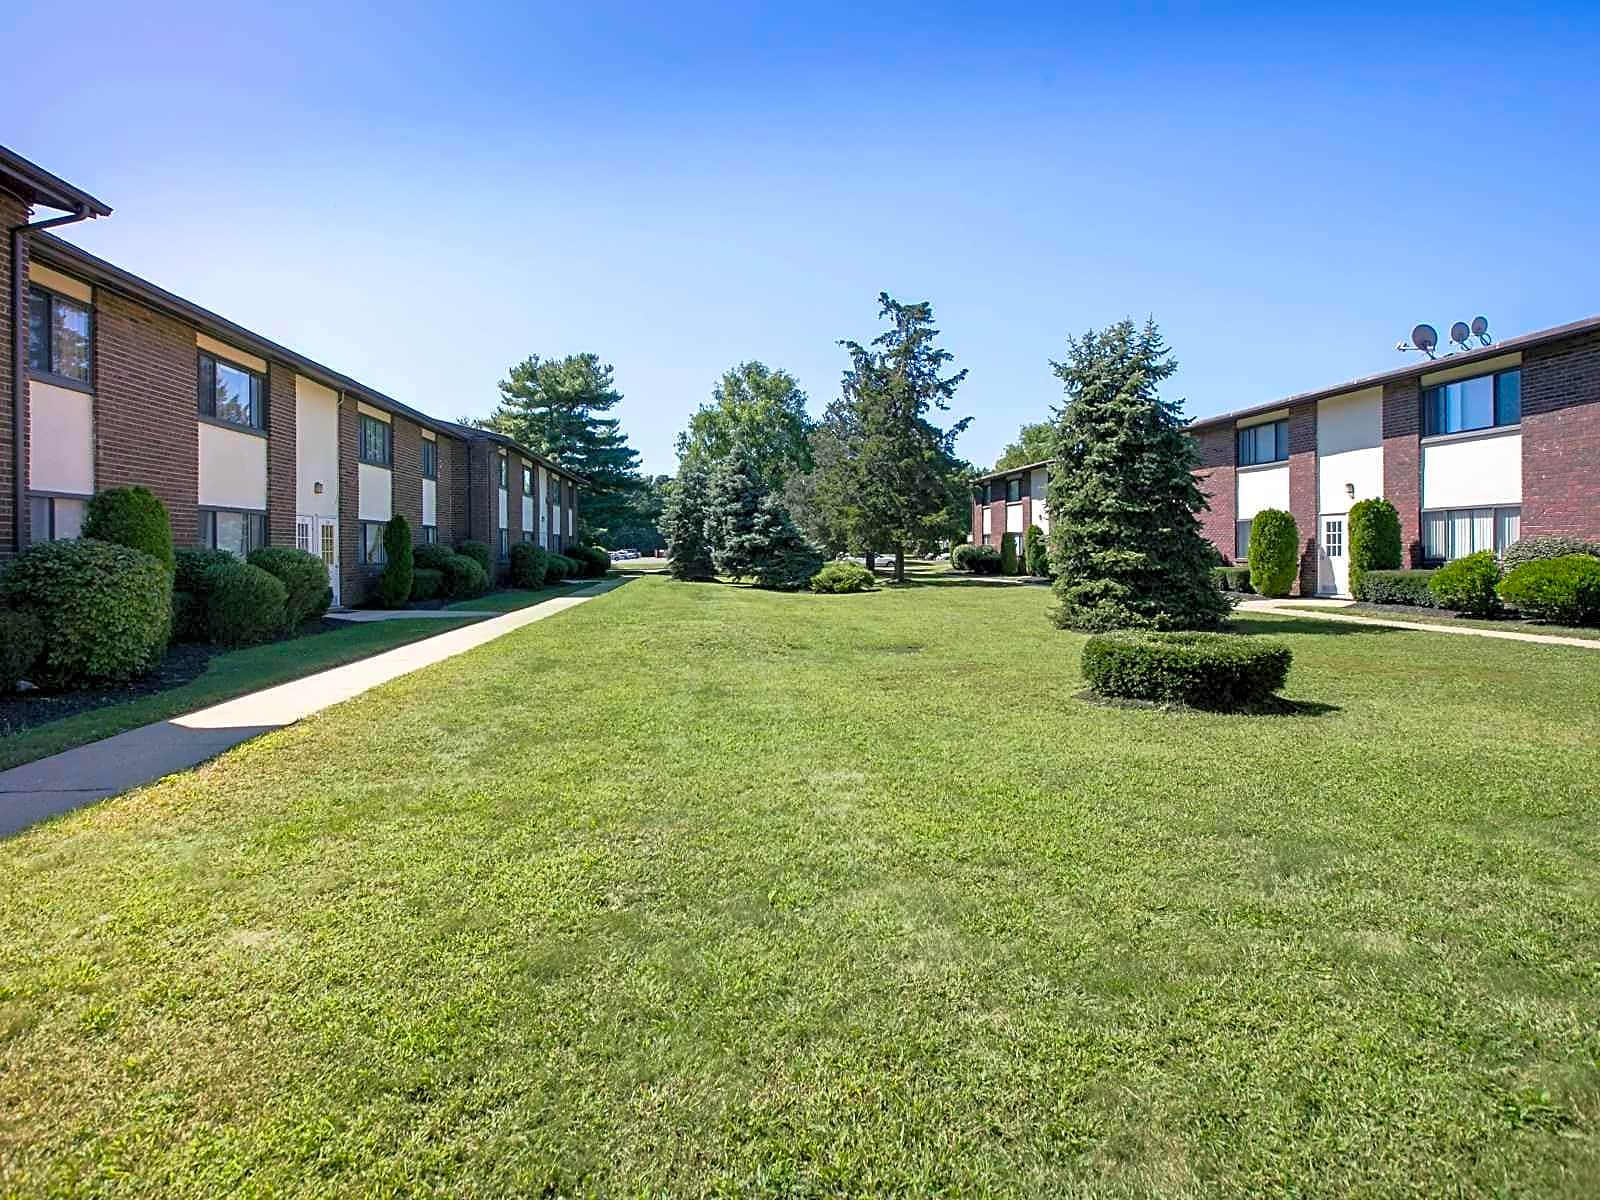 Country Living at Mapleview Apartments - Old Bridge, NJ 08857